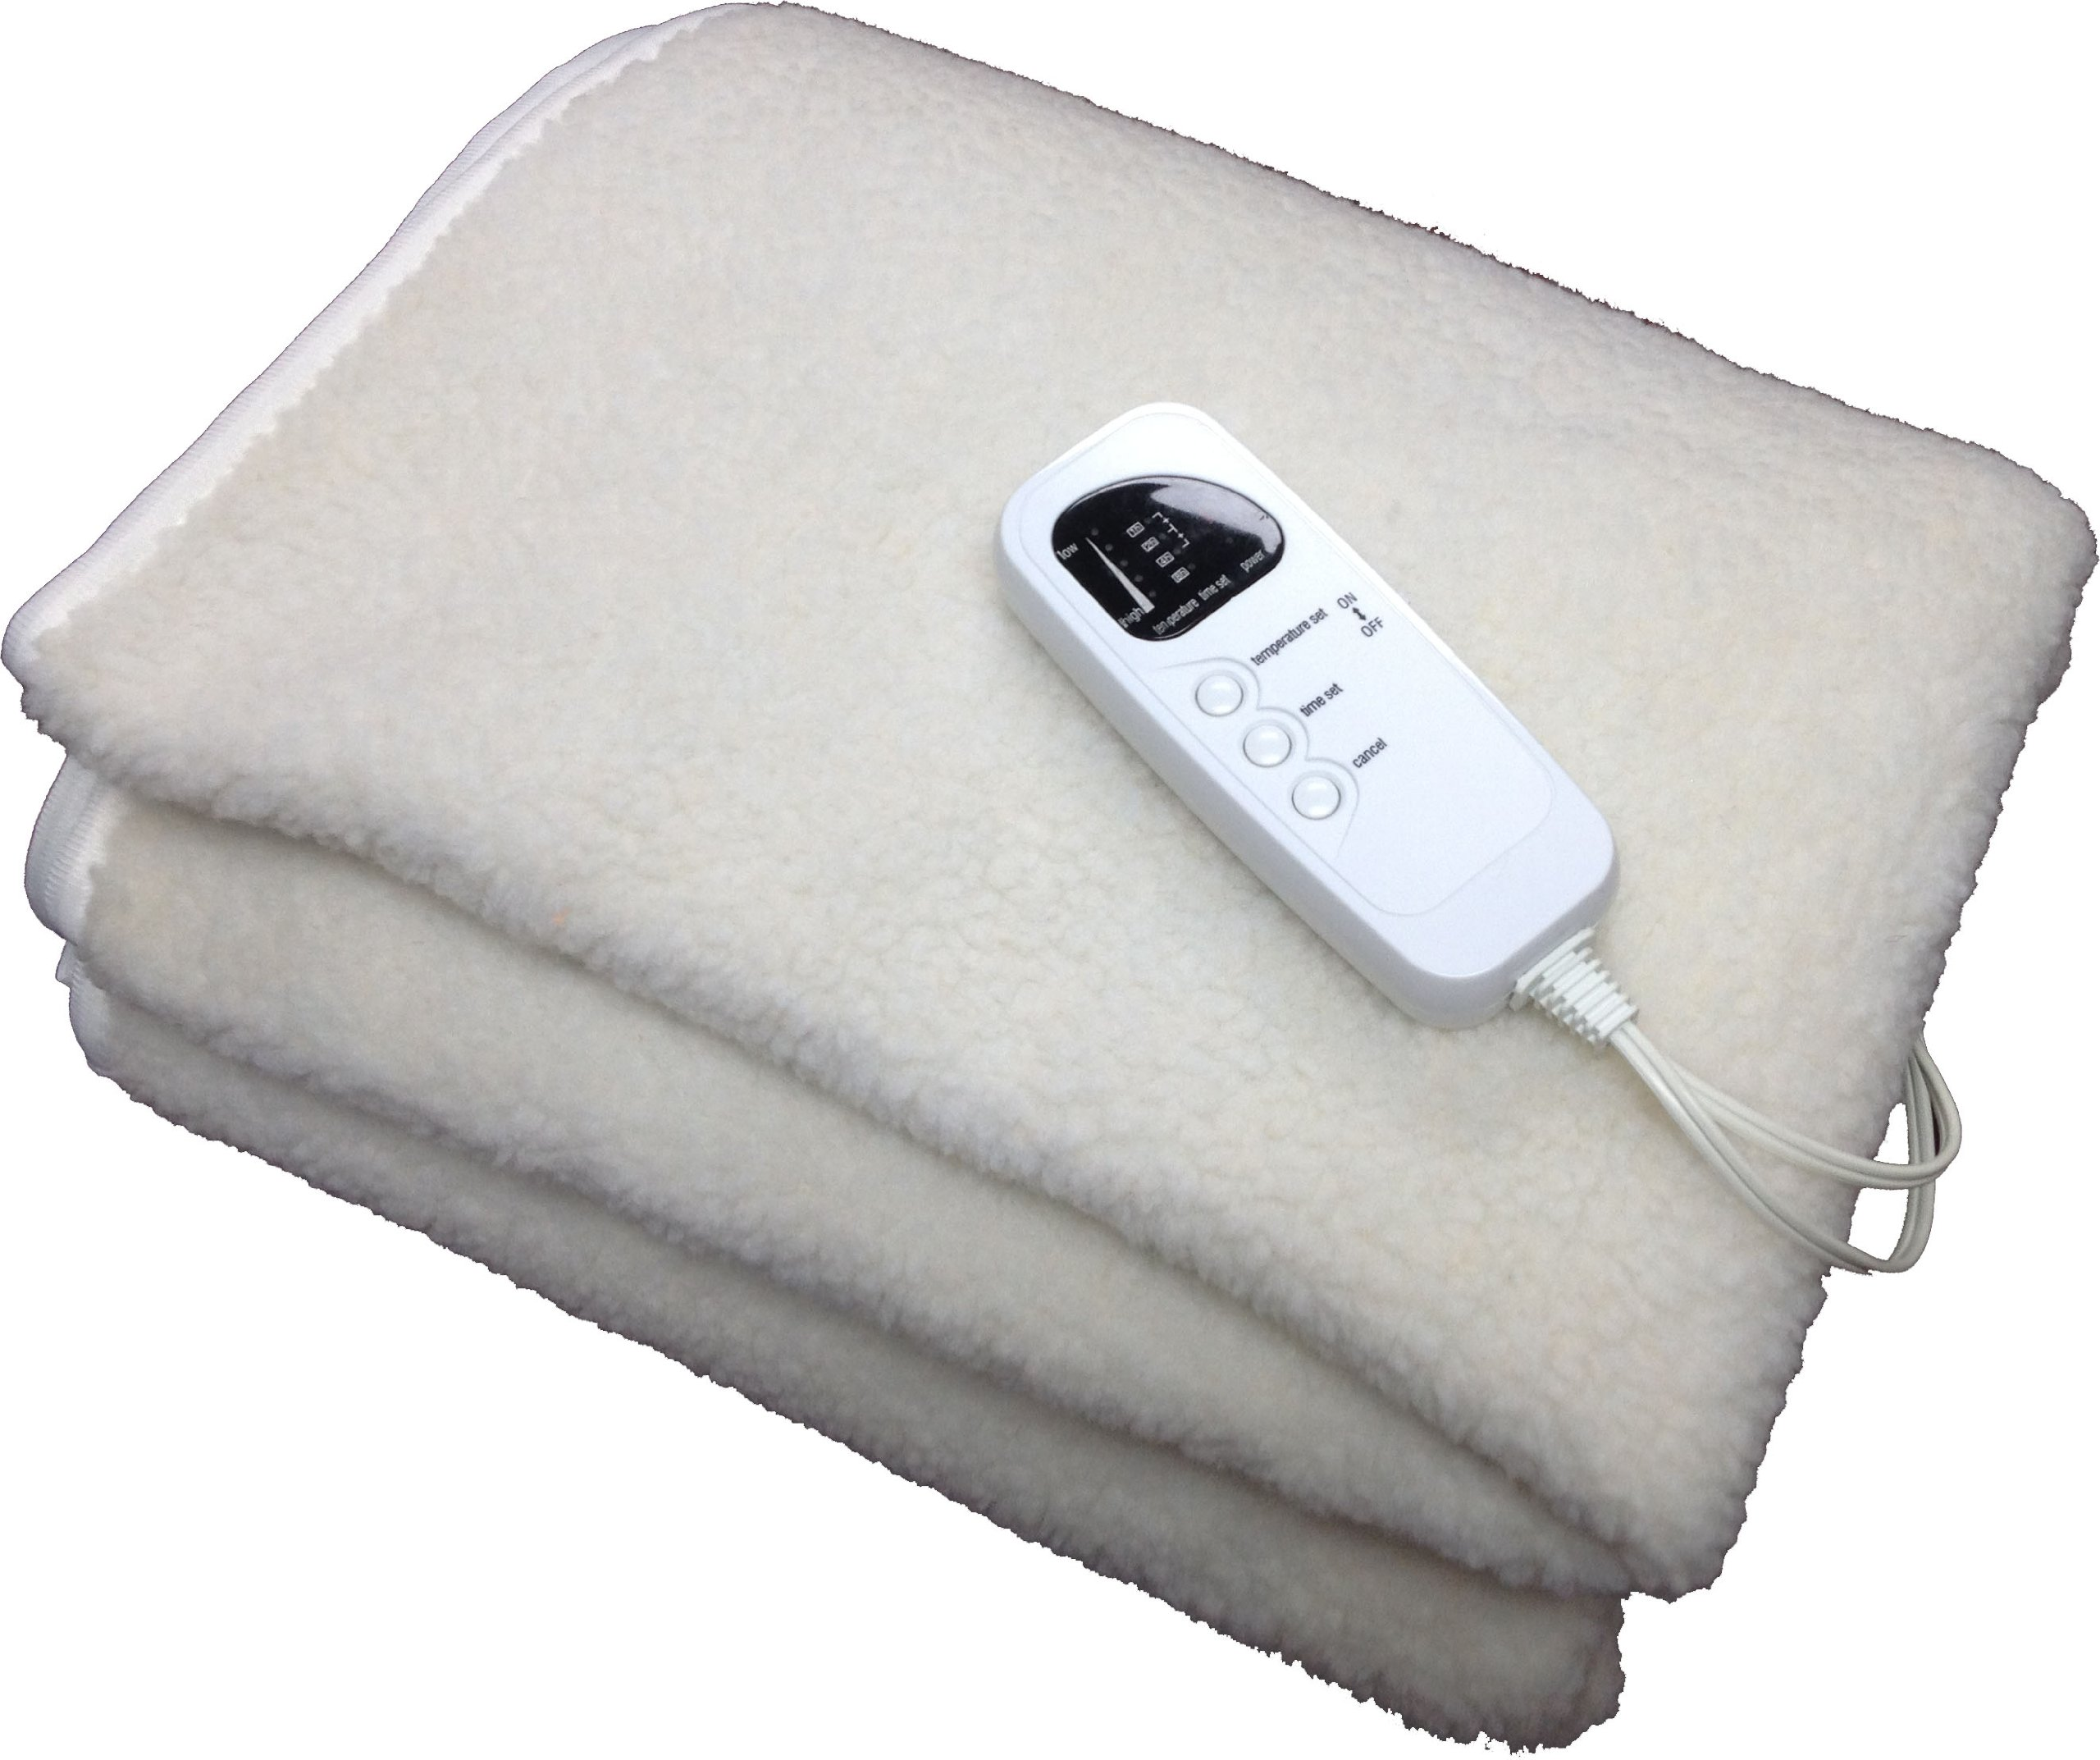 Therapist's Choice® Deluxe Fleece Massage Table Warmer, 12 Foot Power Cord. For Use with Massage Tables Only, Do Not Use as a Bed Blanket Warmer by Therapist's Choice